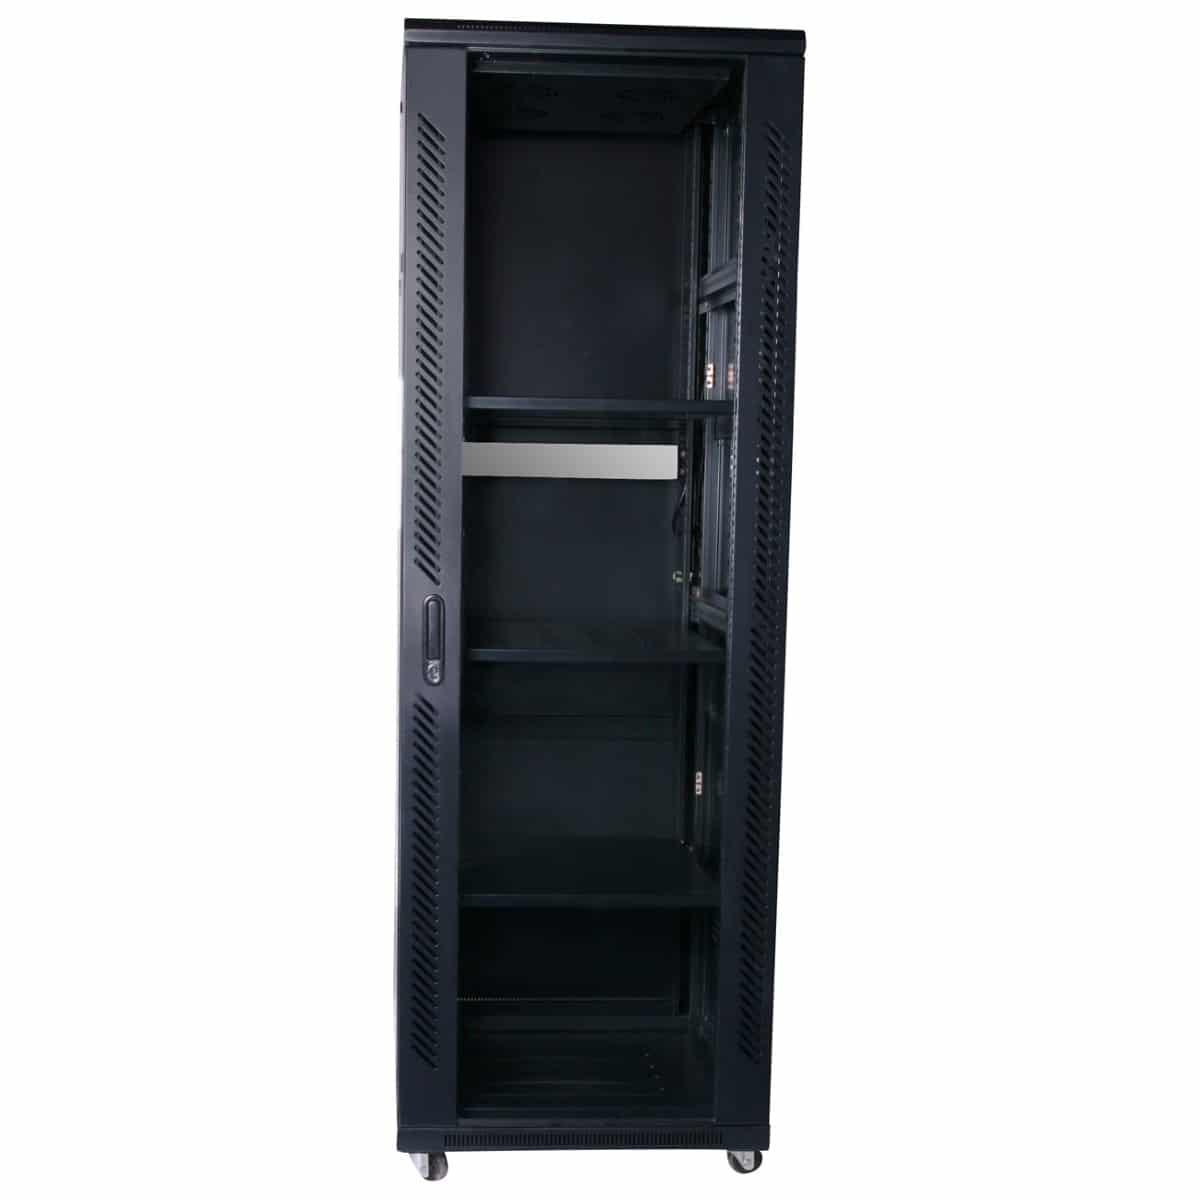 37RU 800mm Deep X 600mm Wide Rack Cabinet